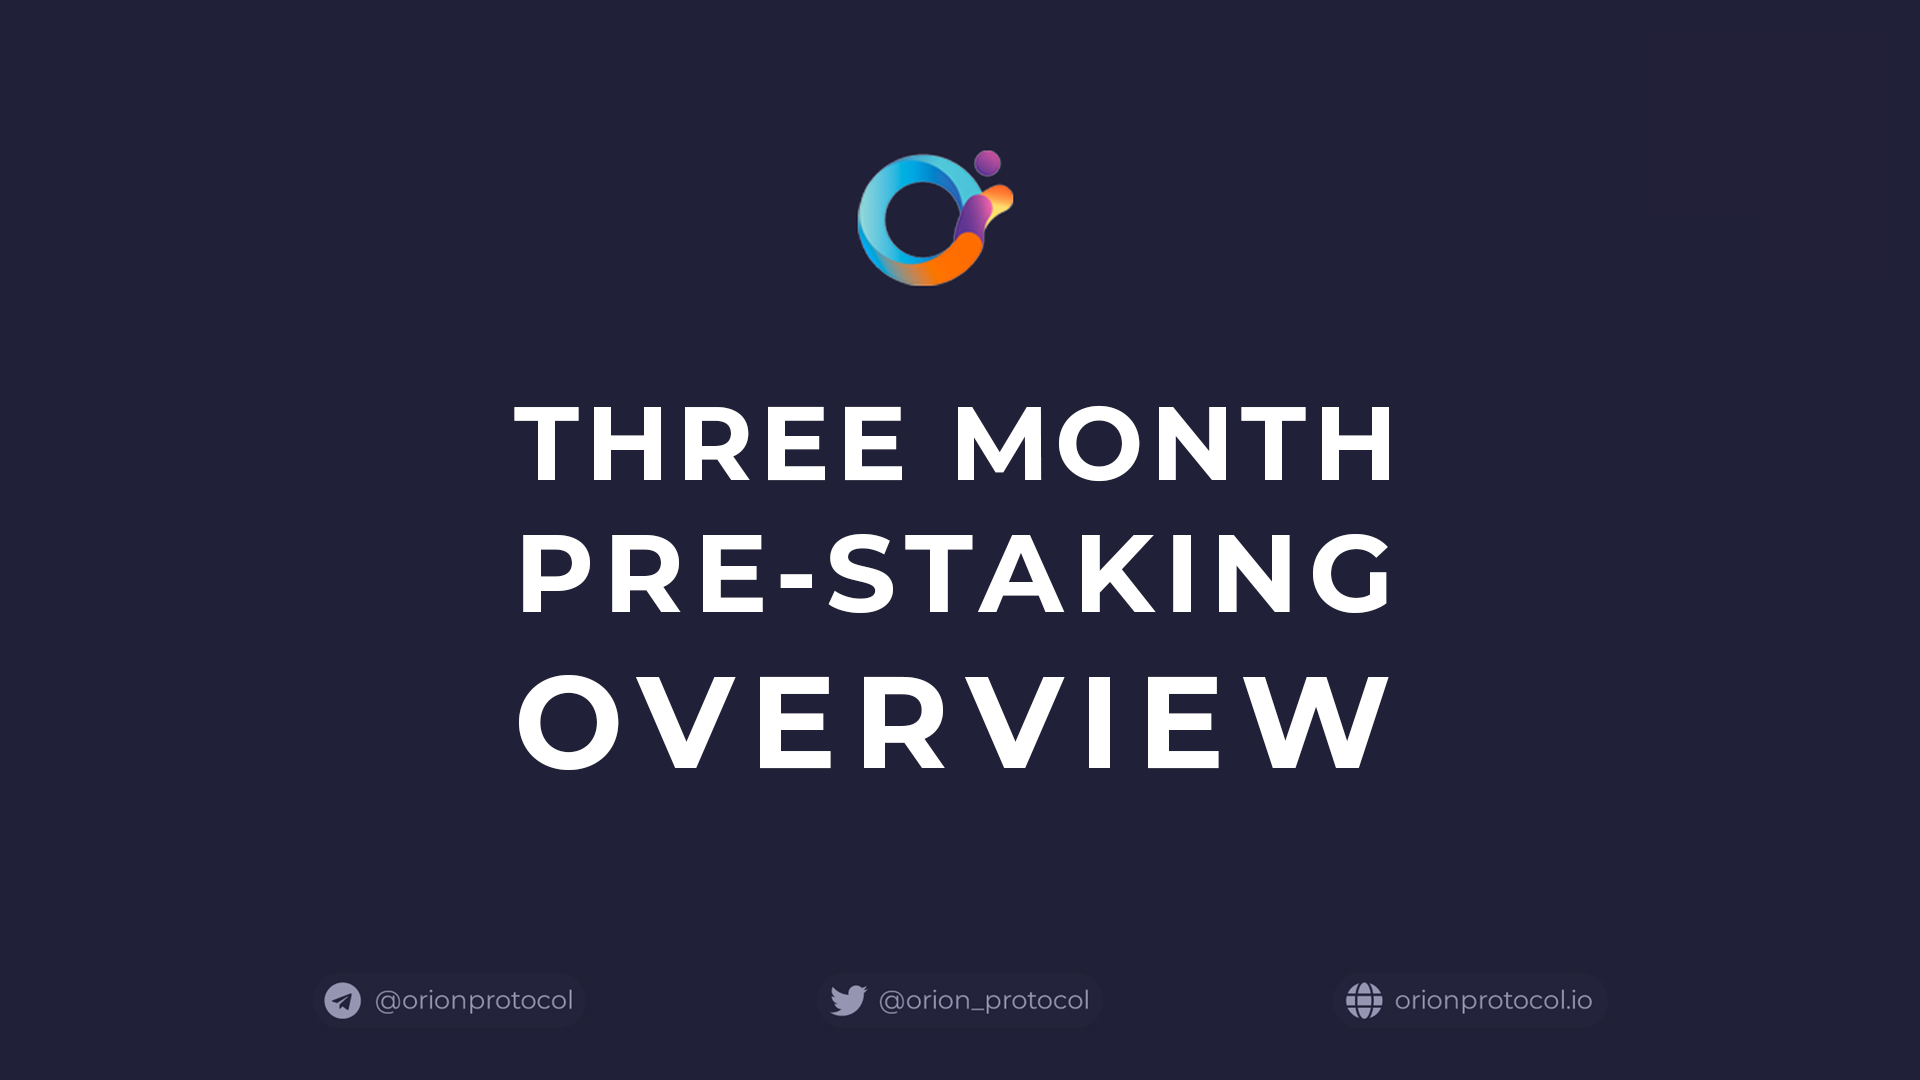 Orion Protocol Continues Pre-Staking Beyond Three Month Campaign.